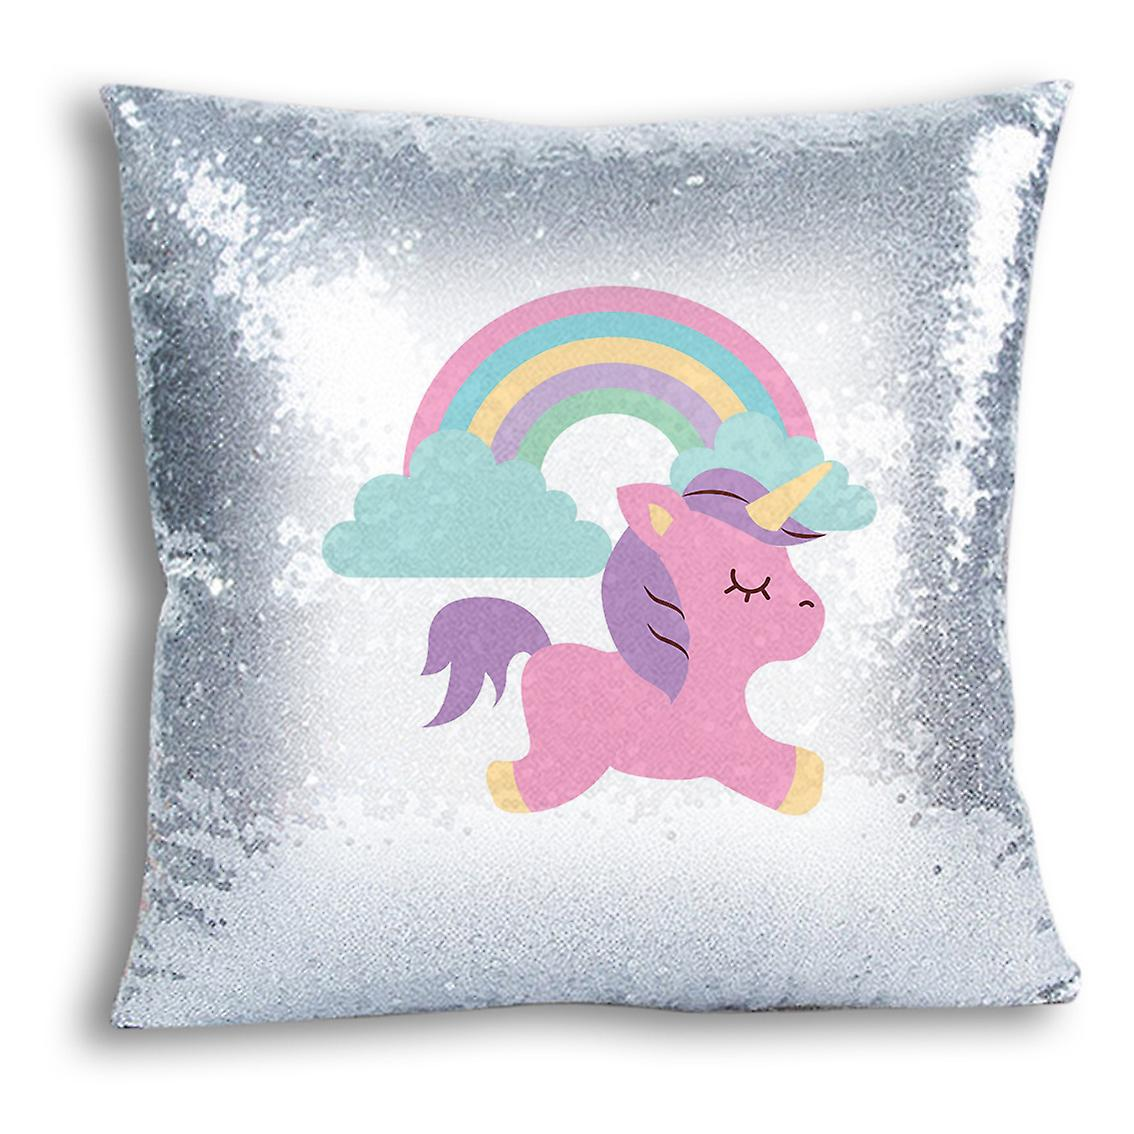 Home For Printed tronixsUnicorn Decor I CushionPillow Design Silver Cover 4 Sequin TluK1cFJ3